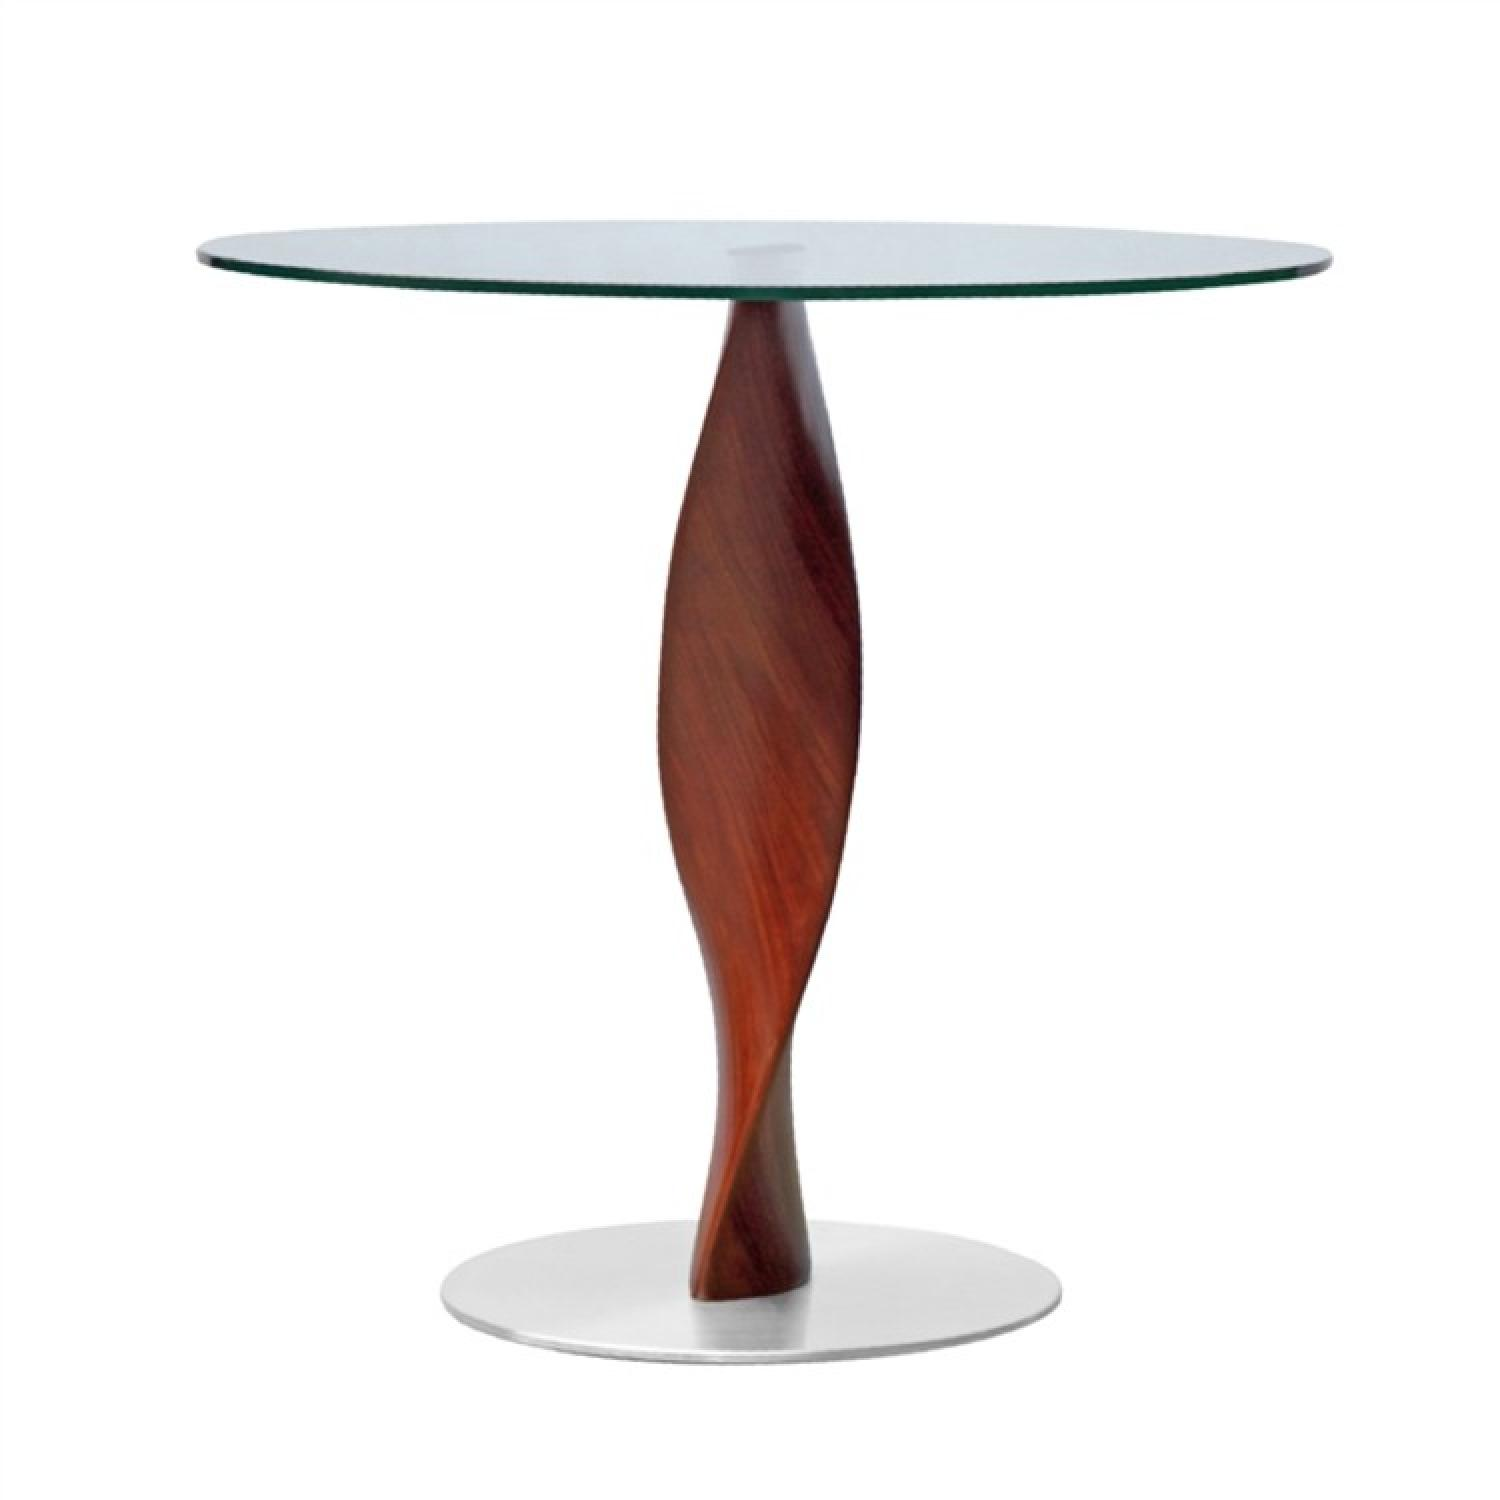 Modern round tempered glass top dining table w aptdeco - Table base for round glass top ...